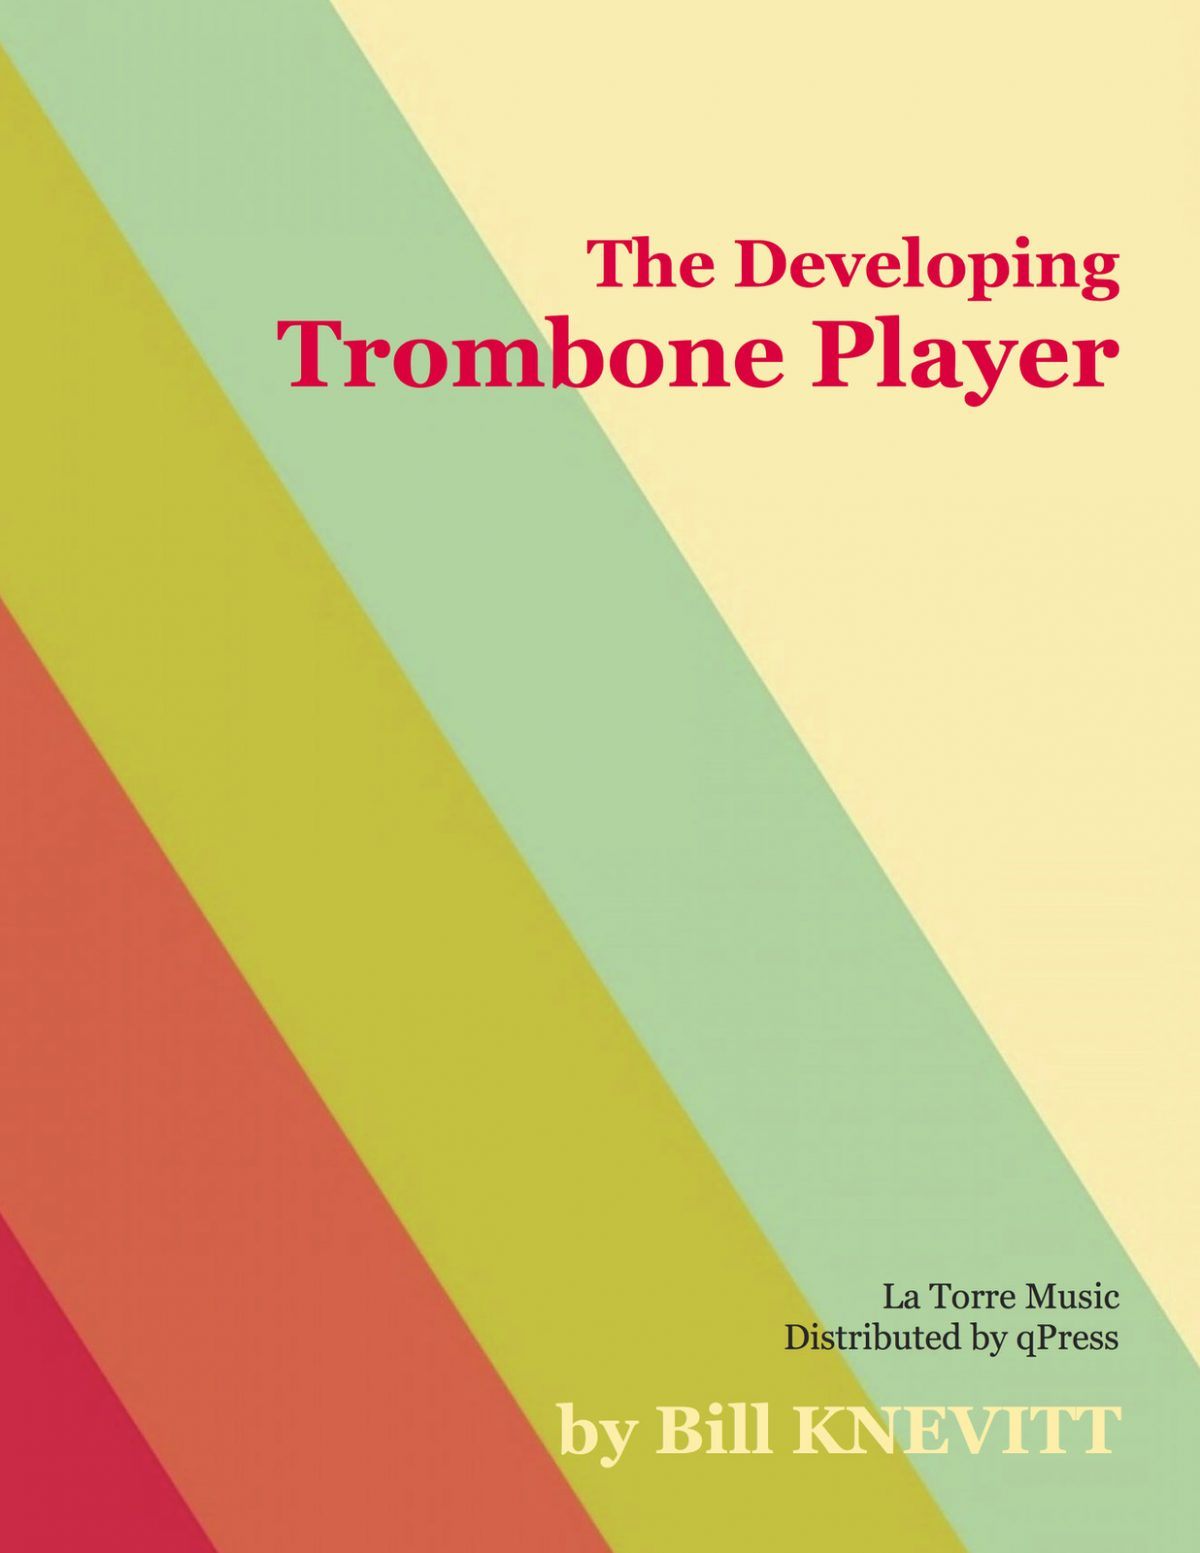 knevitt-developing-trombone-player